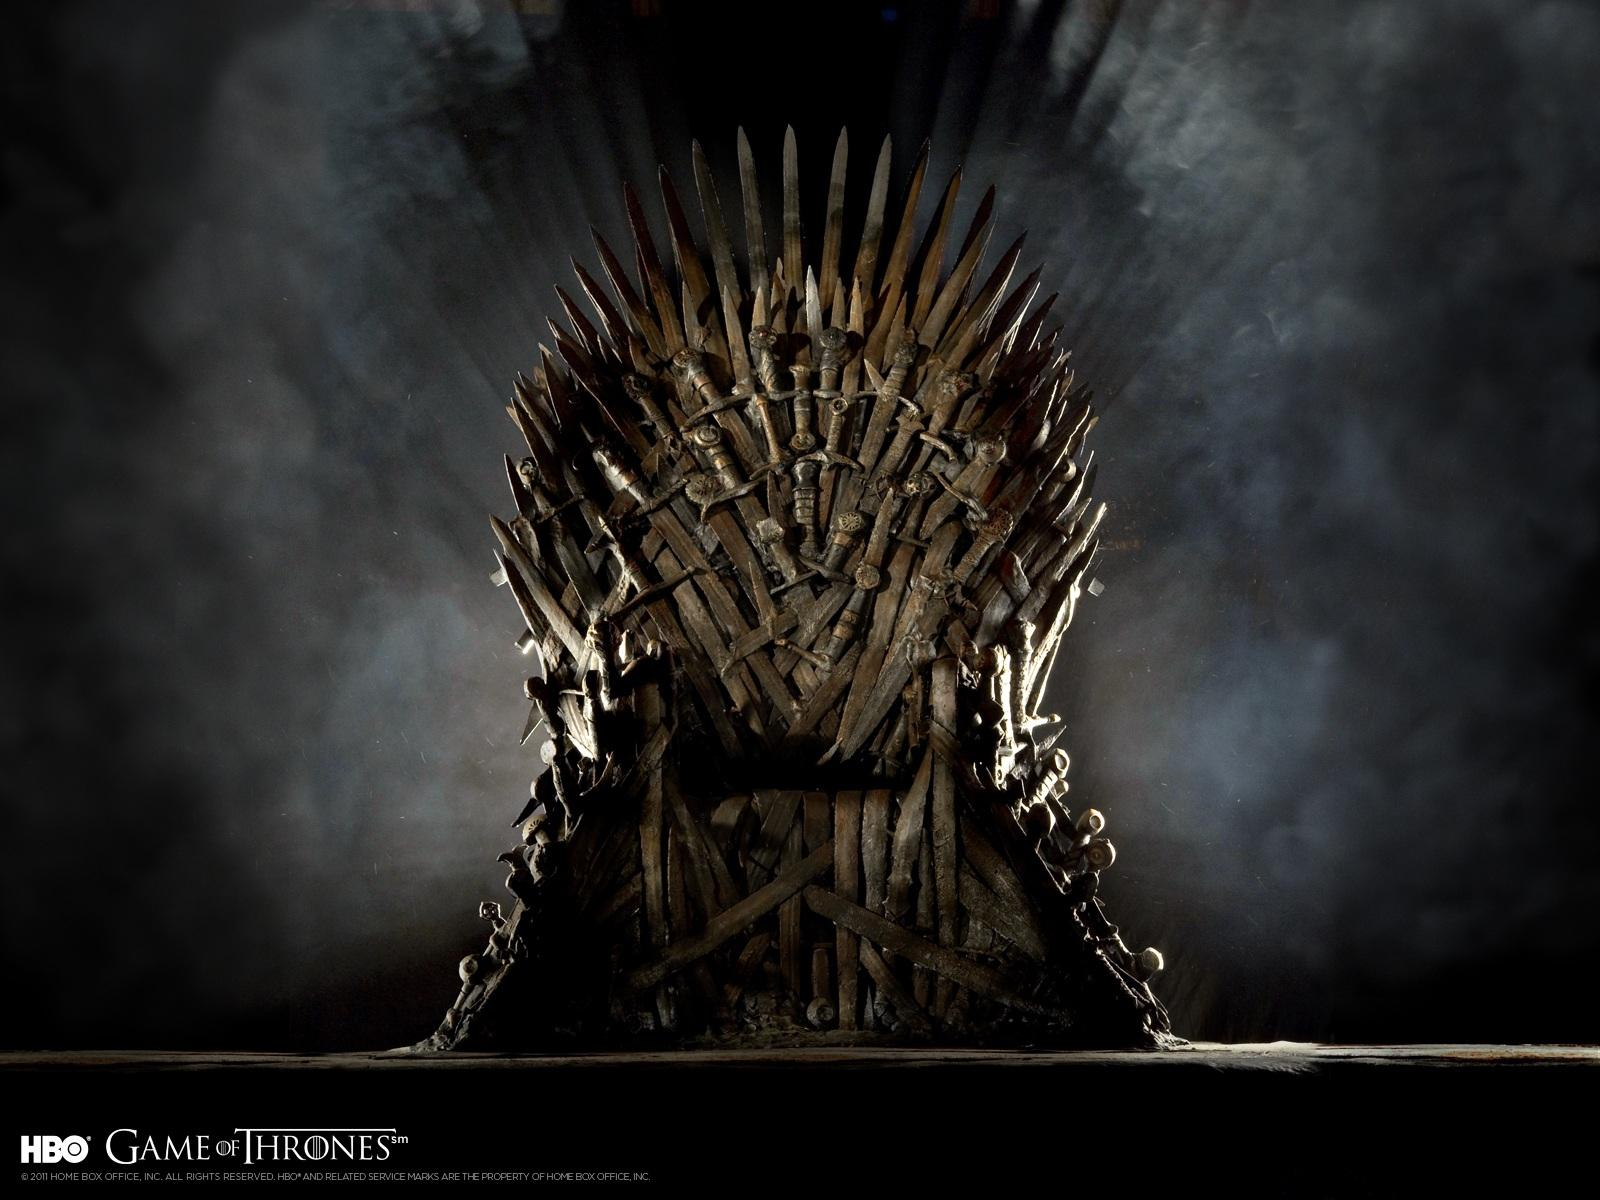 Game of Thrones - Throne of Sword